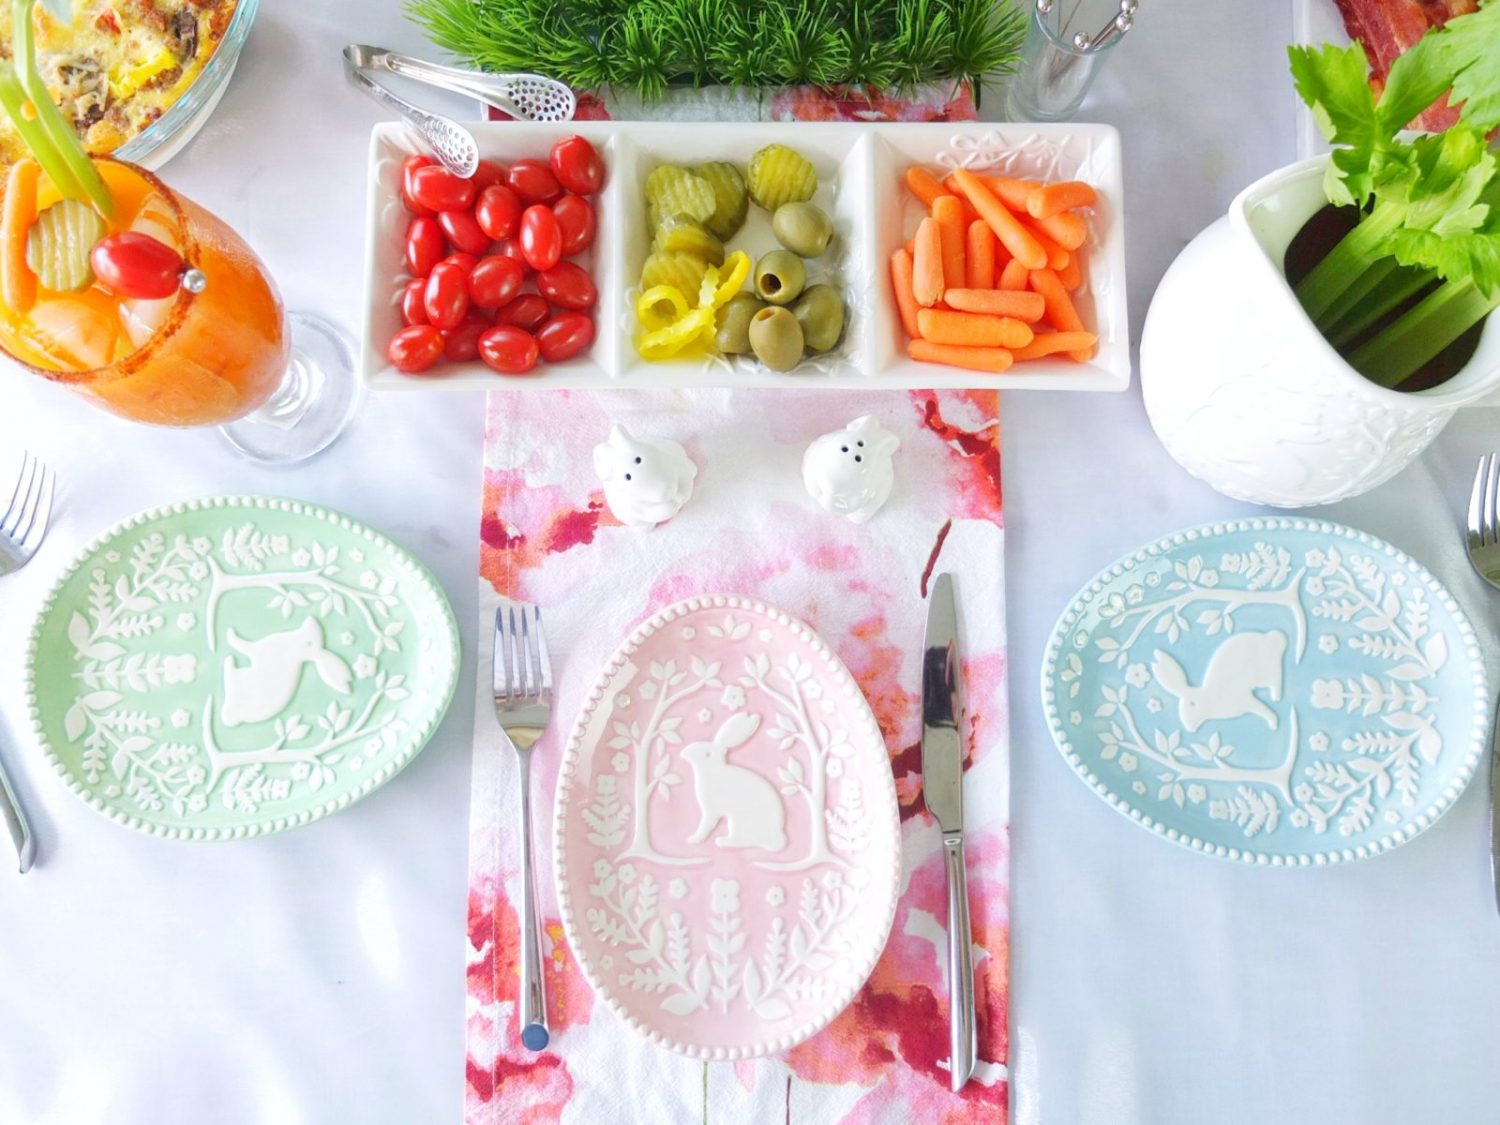 An easter brunch cocktail Bunny Mary, that is a bloody mary made with carrot juice & garnished with a celery bunny. Plus a look at my Easter Brunch tablescape with H-E-B that includes bunny muffins. // www.elletalk.com #ad #HEB